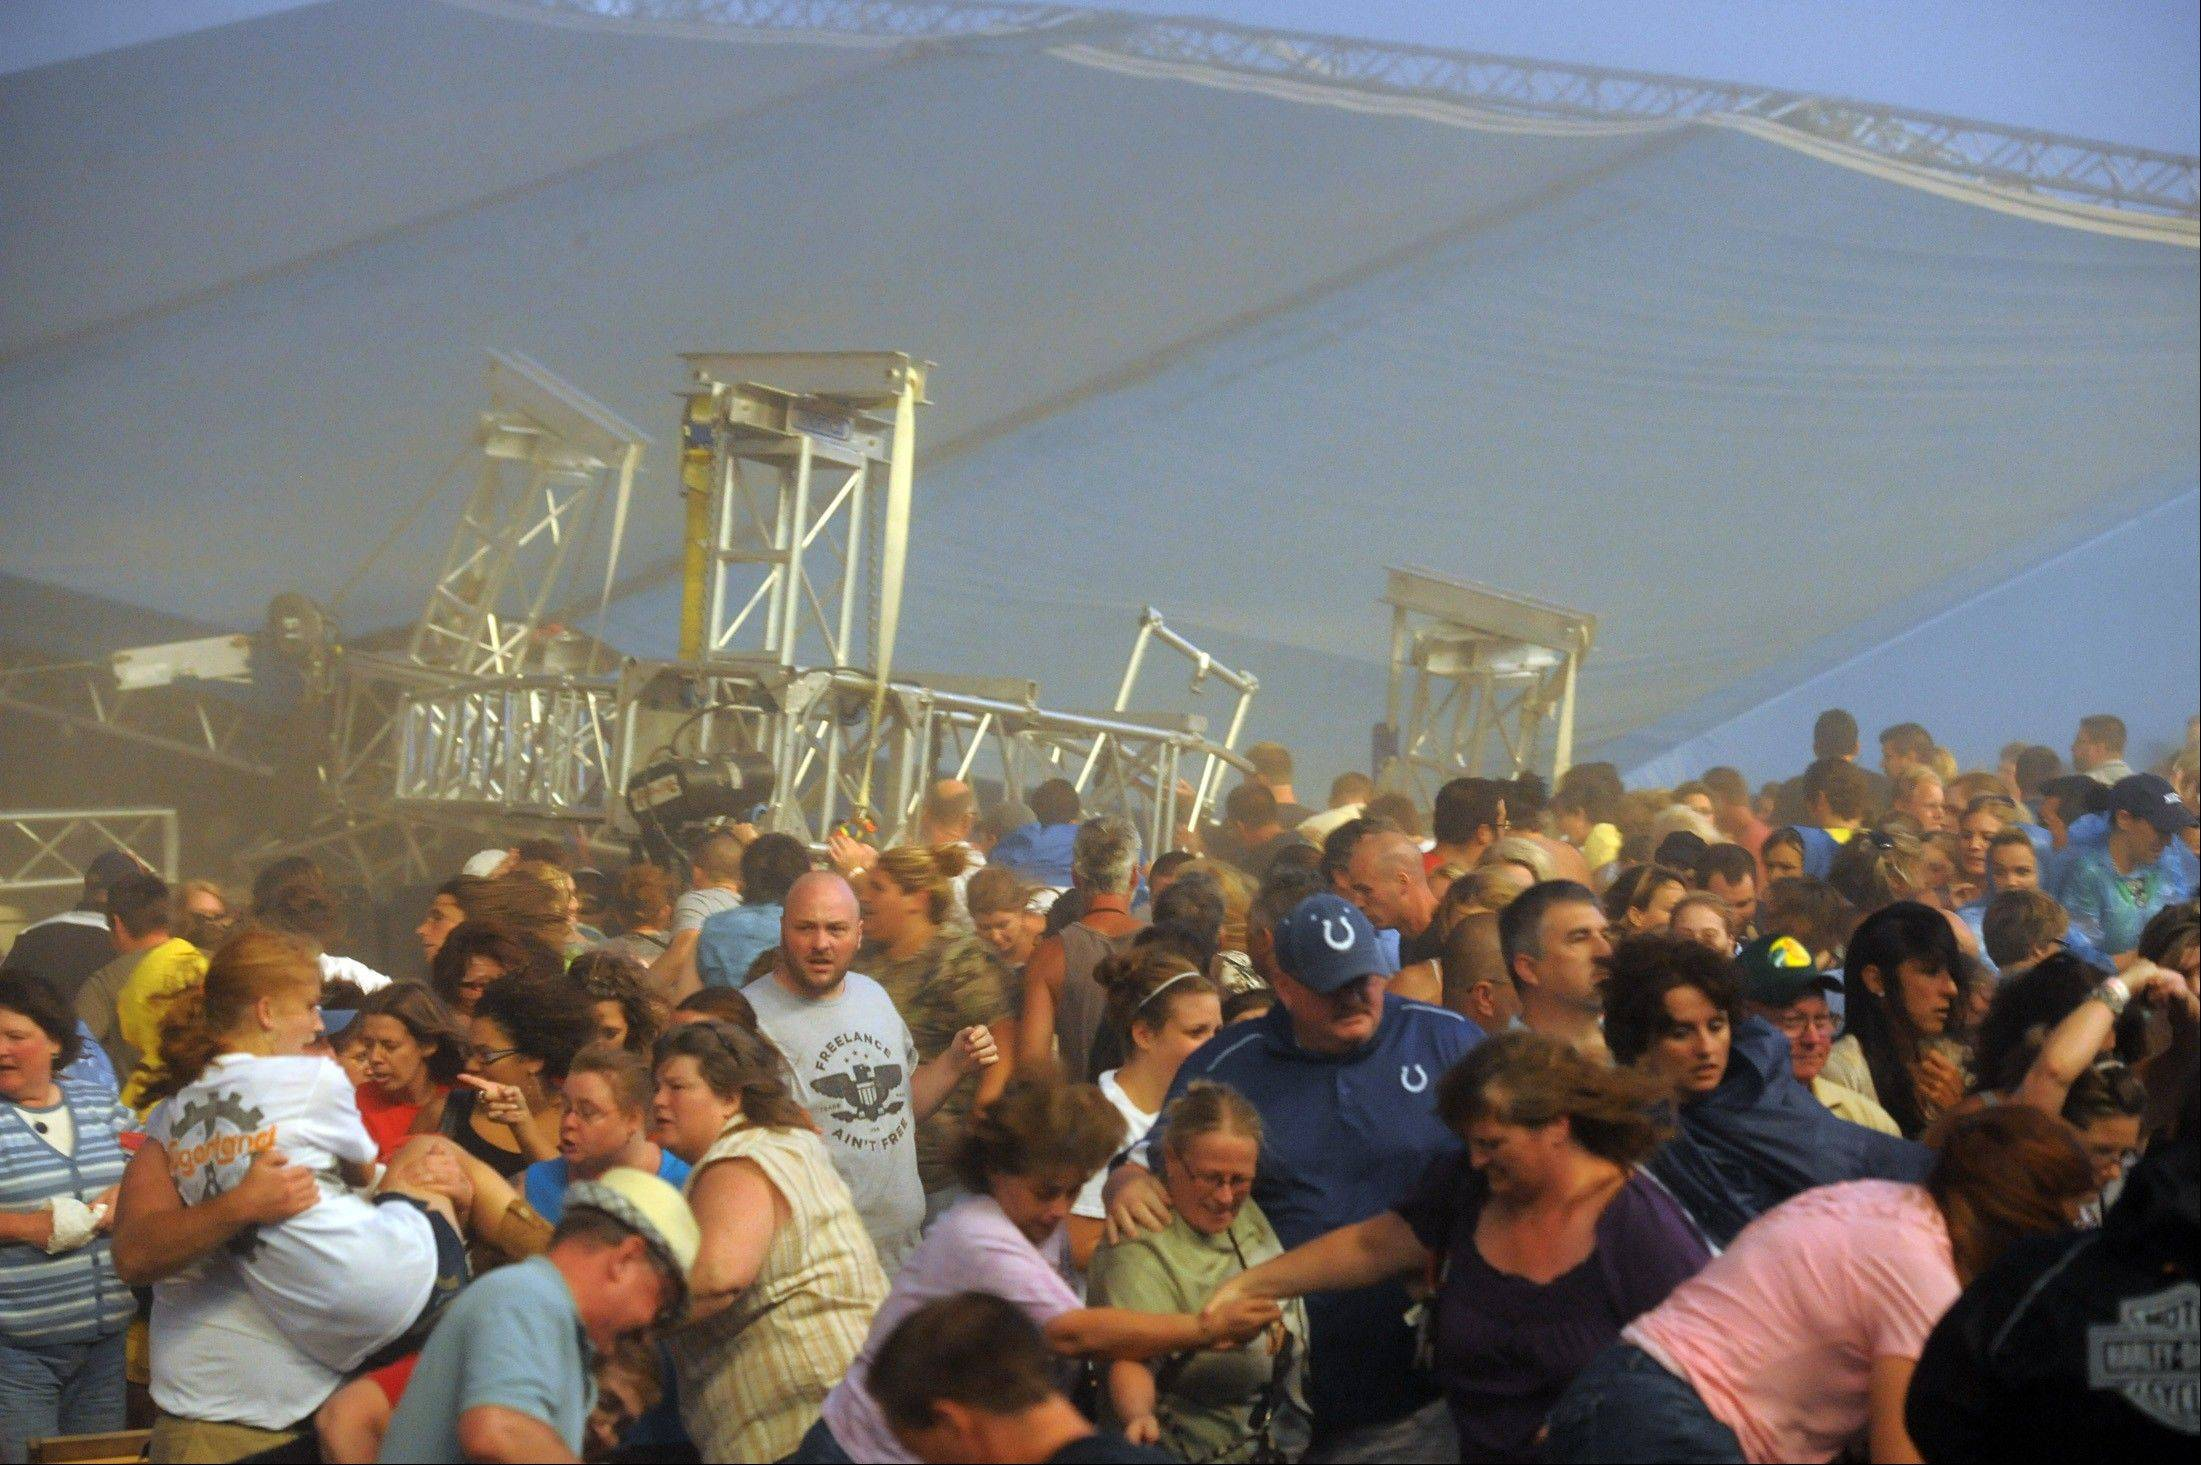 Fans waiting to see Sugarland run away after high winds blew the stage over Saturday at the Indiana State Fair Grandstands. About a dozen people are reported to have injuries after the stage collapsed.